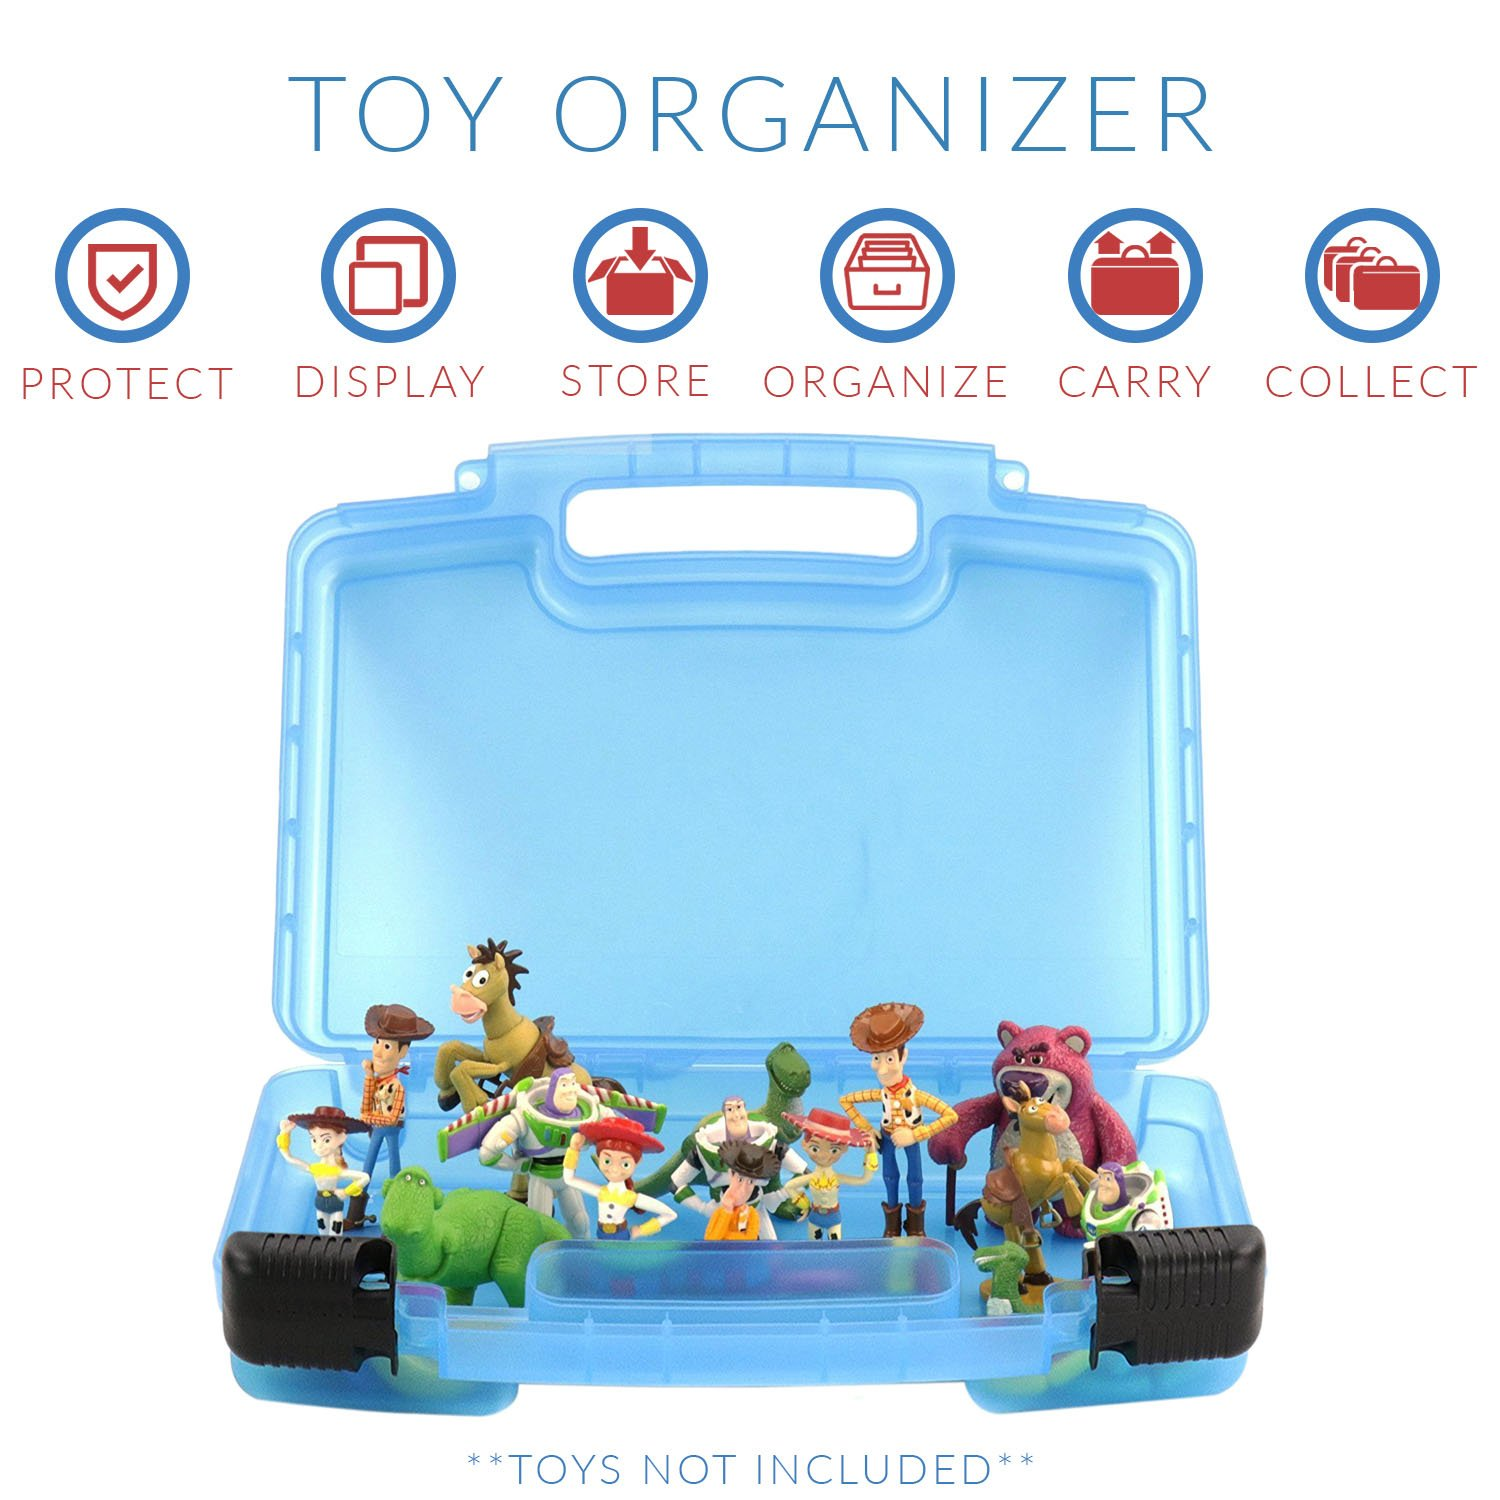 Figures Playset Organizer Life Made Better Toy Story Case Toy Storage Carrying Box Accessories Kids LMB LMB121